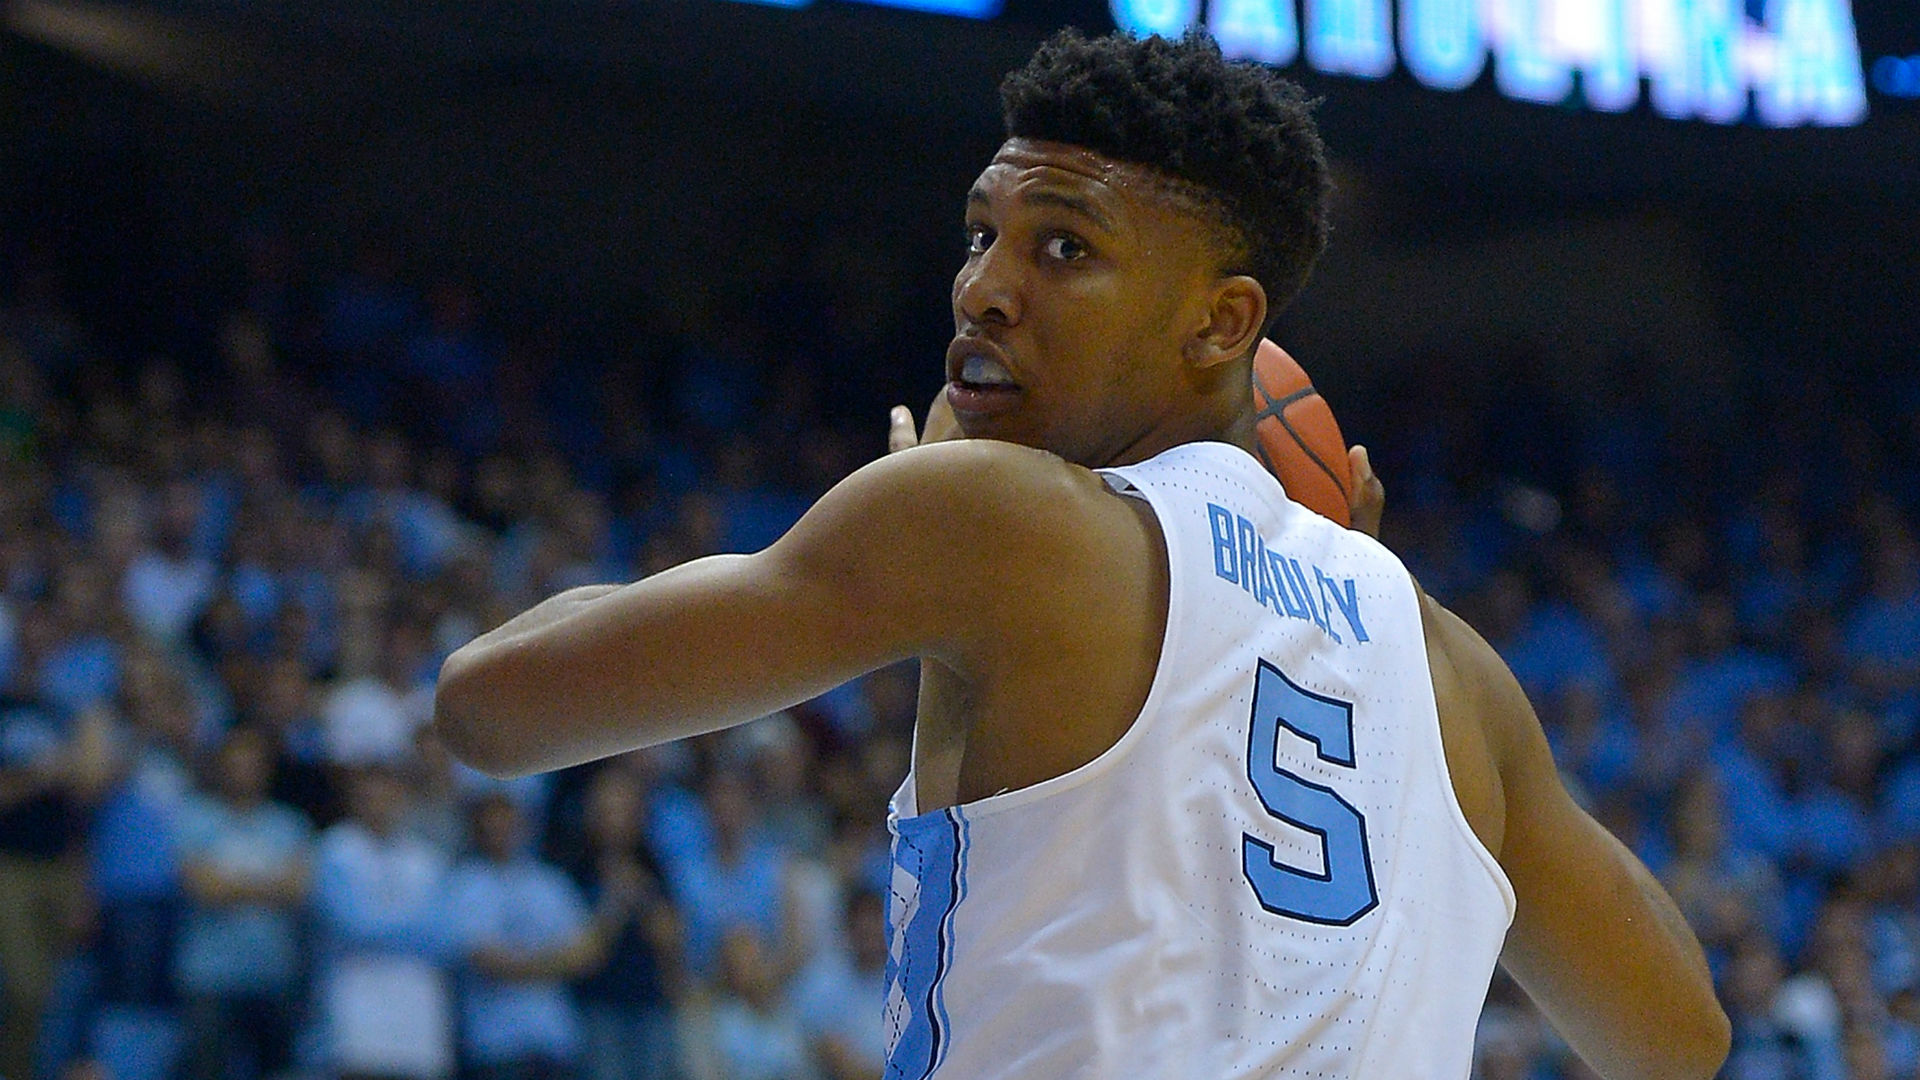 UNC's Tony Bradley Signing with Agent; Staying in NBA Draft